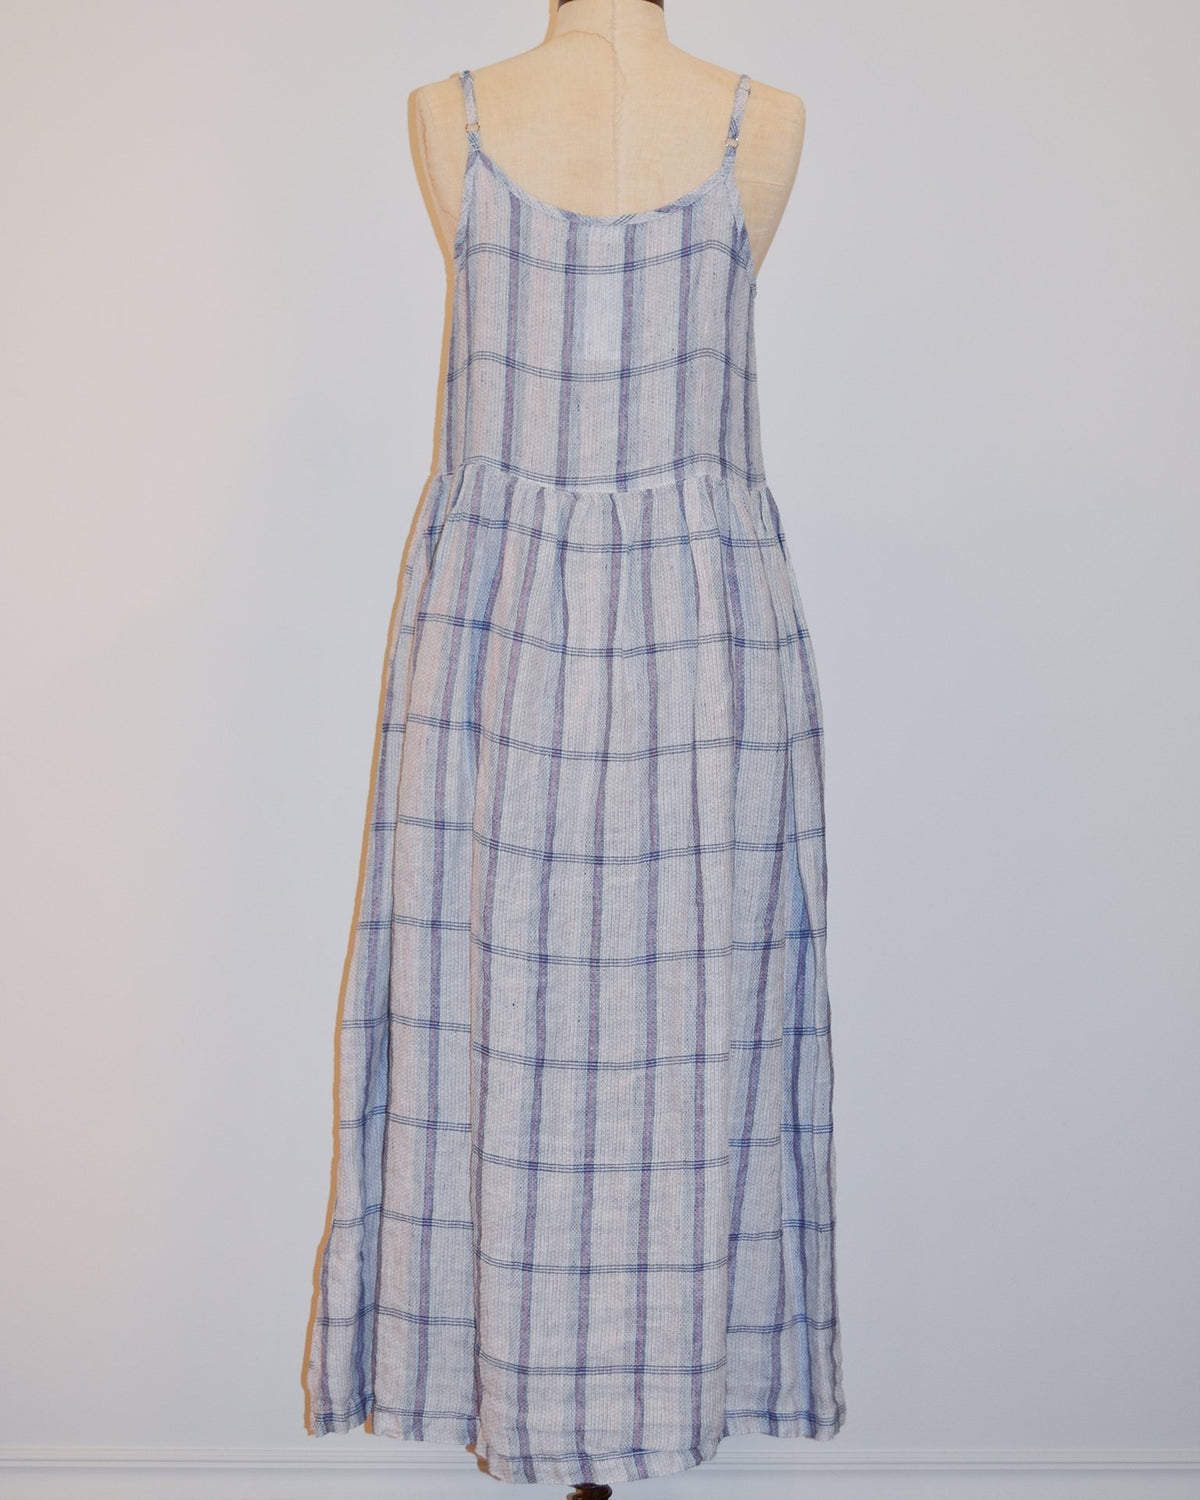 CP Shades Clothing S Hazel Dress in Blue & Pink Plaid